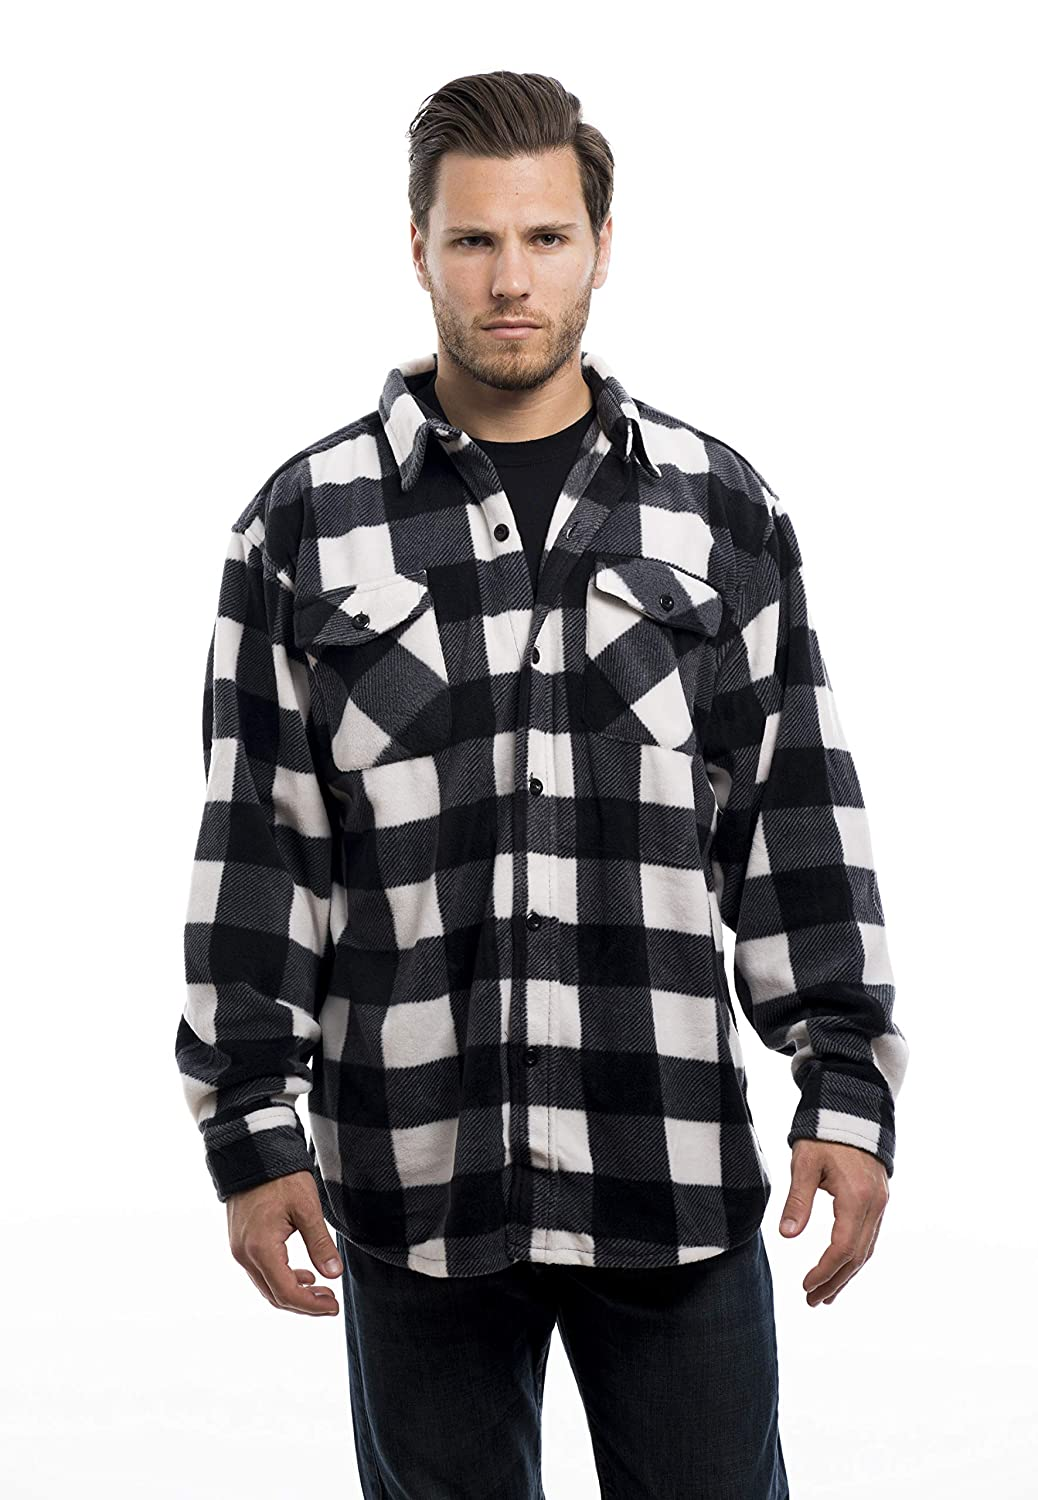 TrailCrest Men Casual Long Sleeve Plaid Checkered Shirts Button-up Fleece Sport Clothes